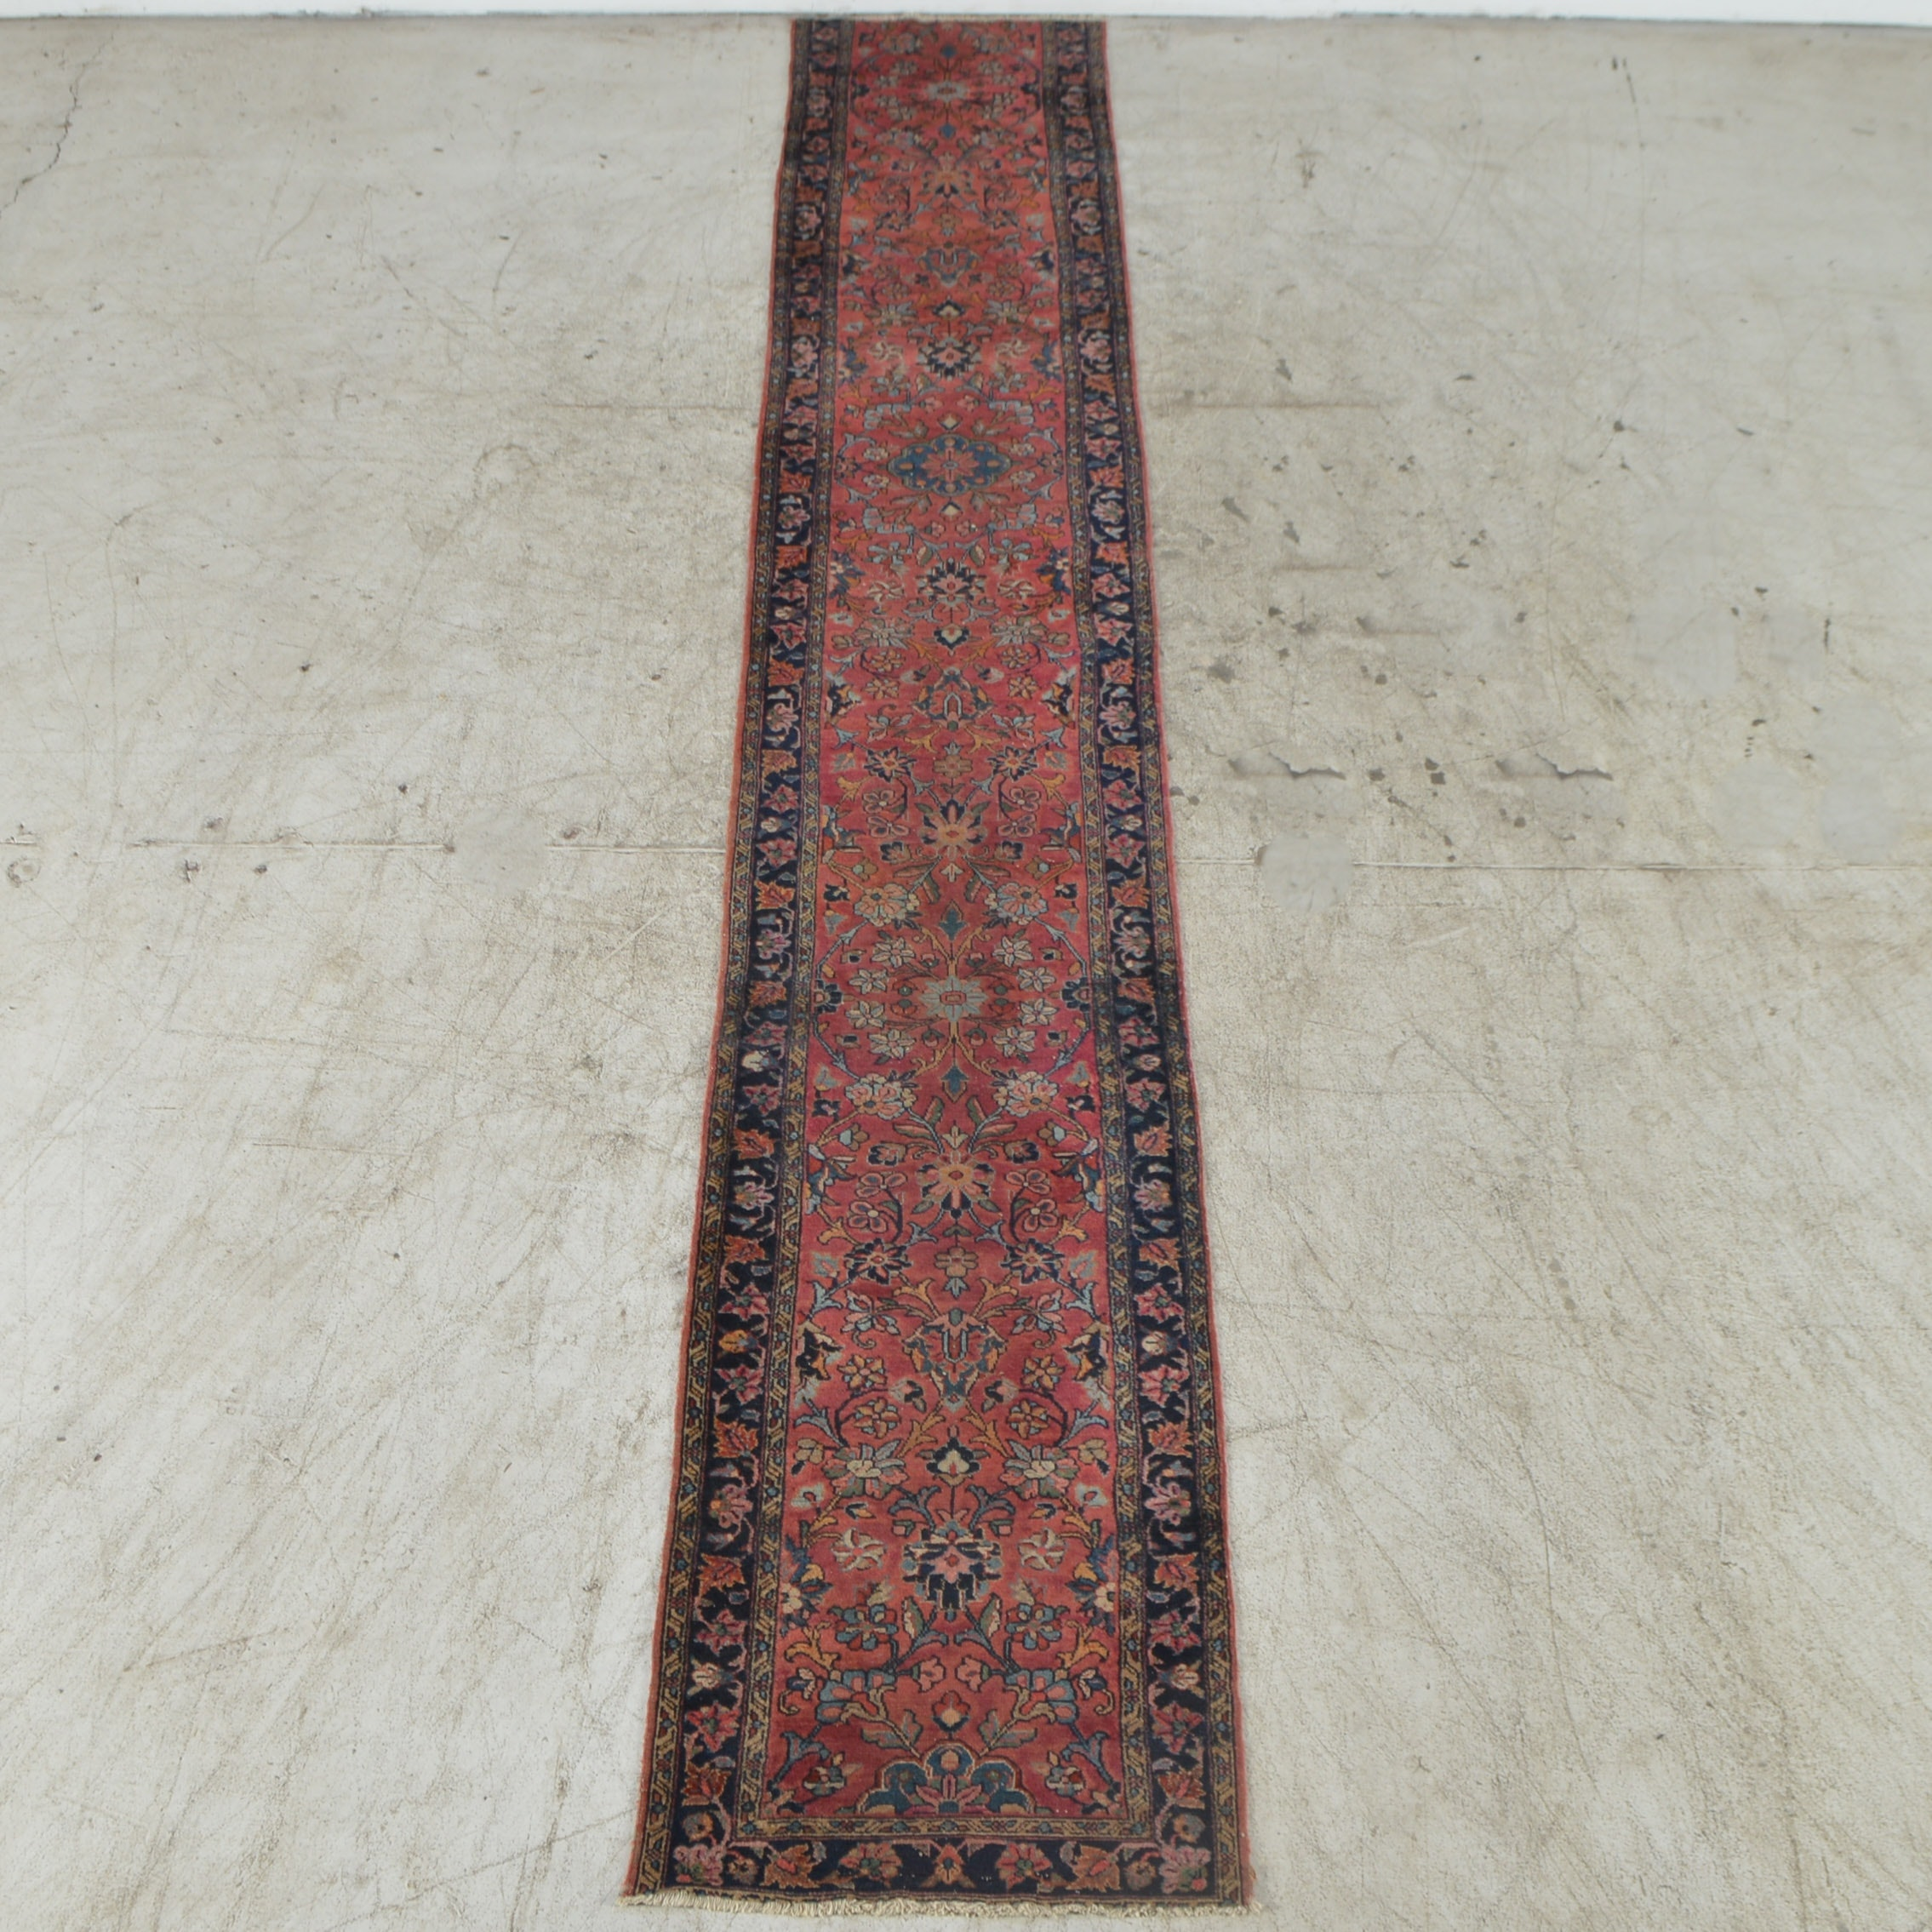 Extra Long Antique Hand-Knotted Persian-Inspired Carpet Runner